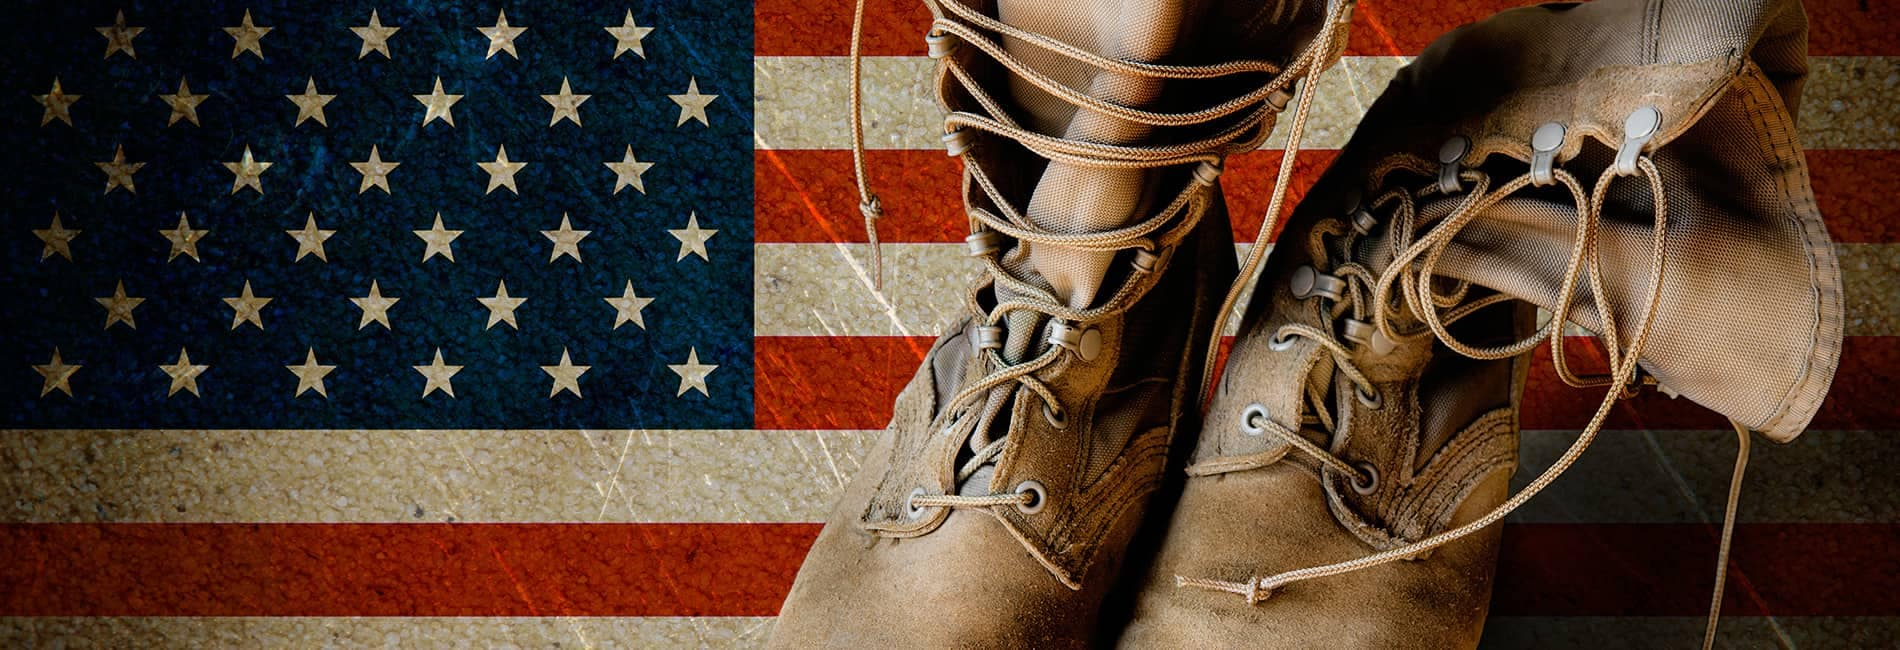 Worn leather boots sitting atop a faded American flag